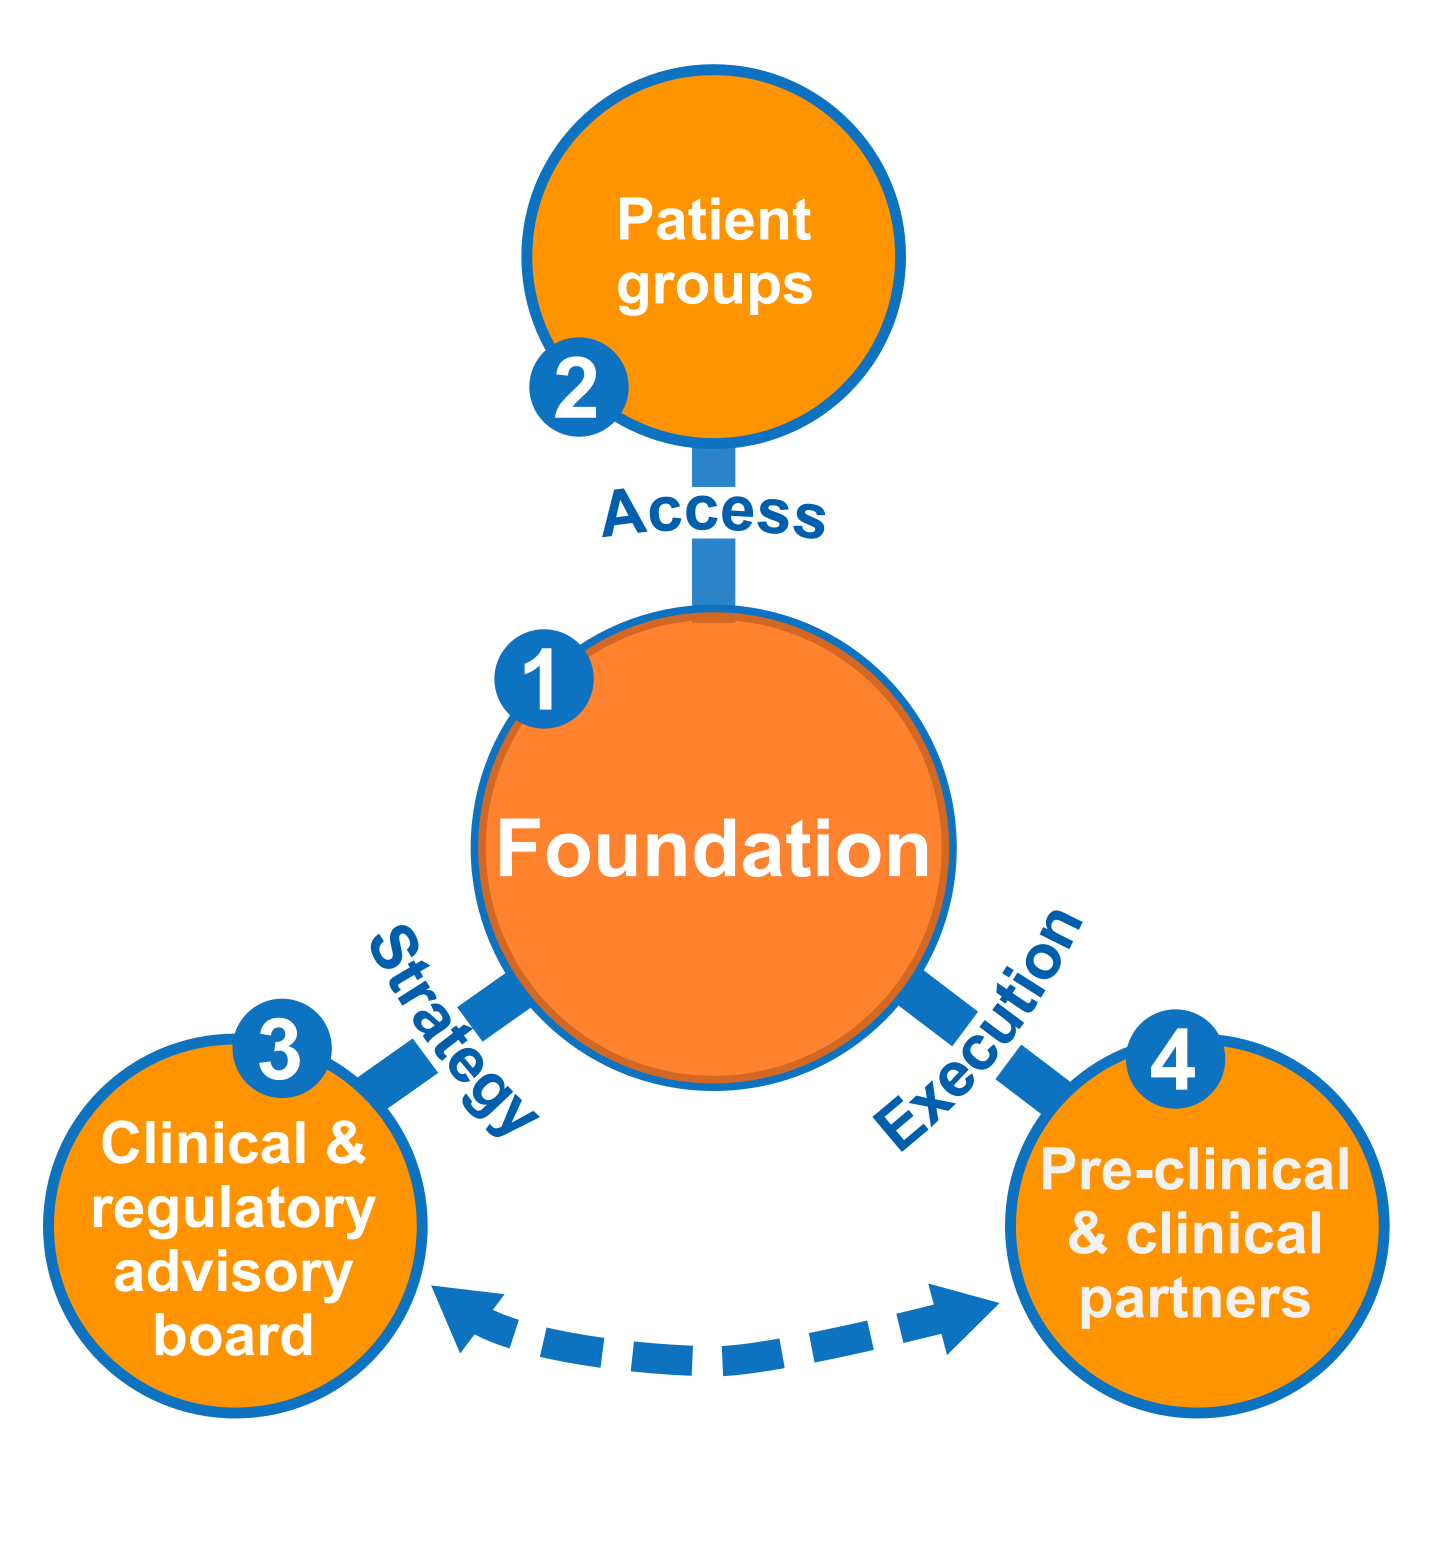 EspeRare's model of developement is based en close collaboration with patient groups, clinical and regulatory advisory board, and pre-clinical and clinical partners